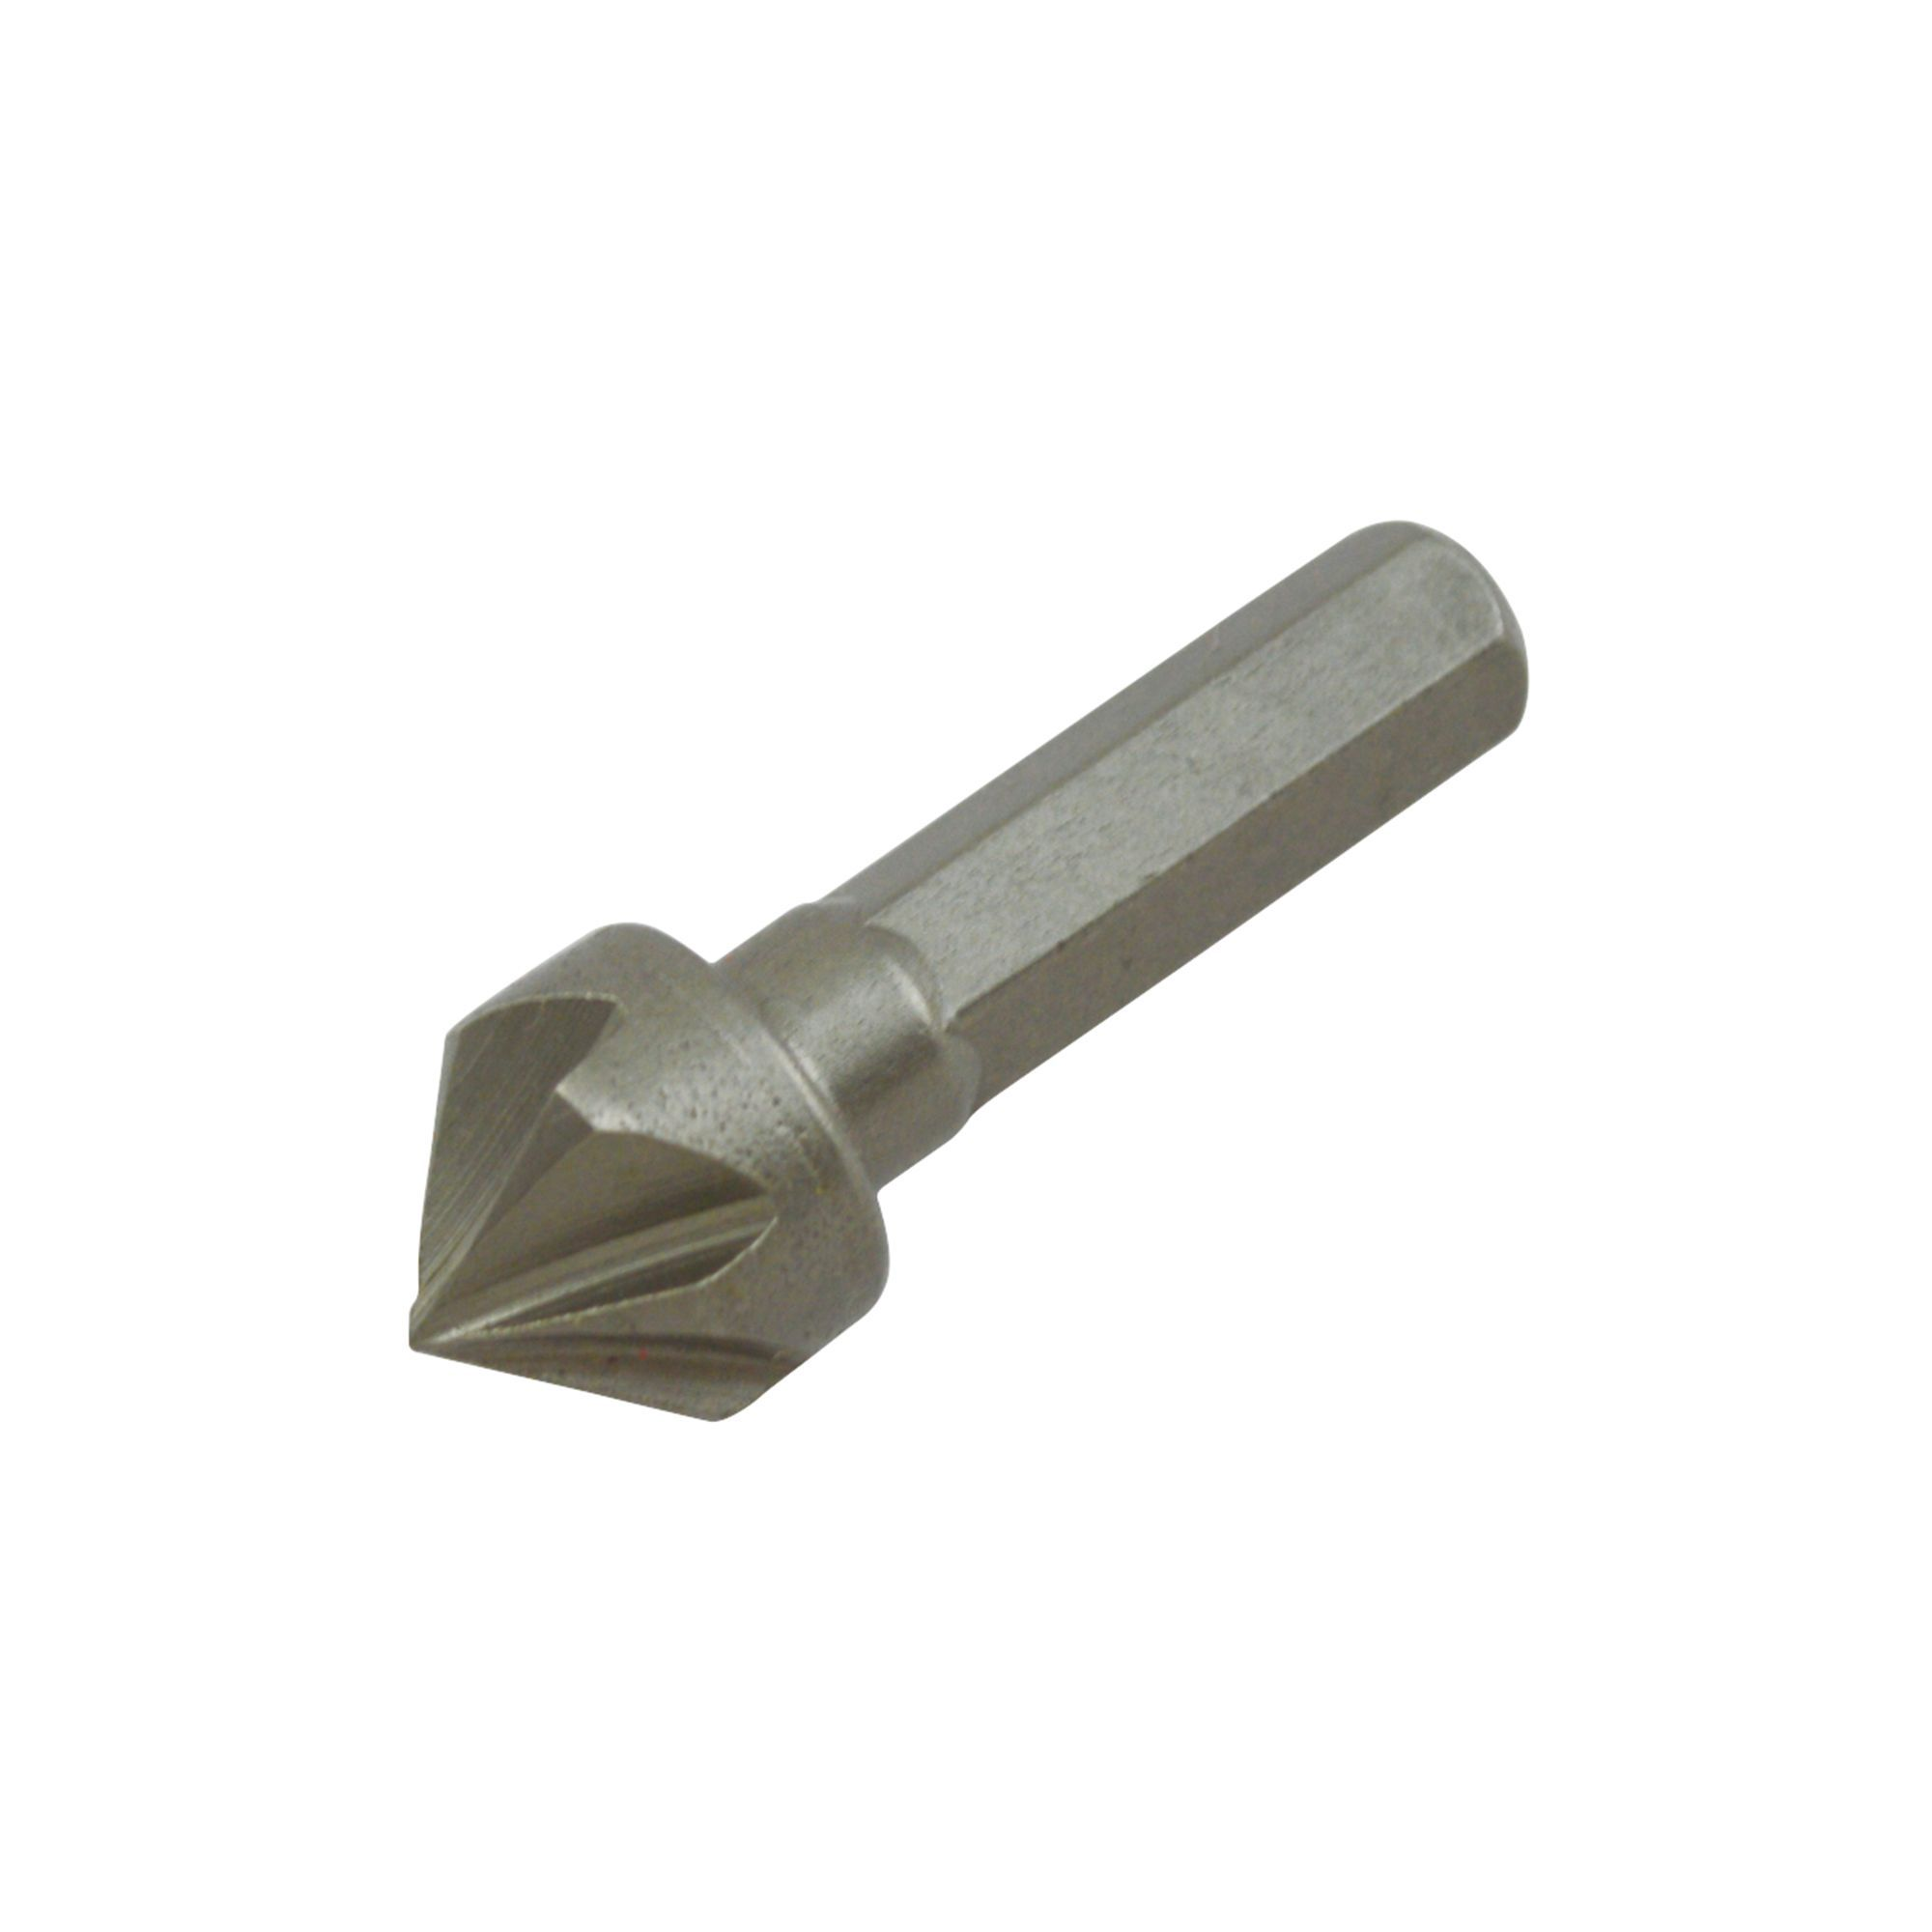 Universal Carbon steel Countersink (Dia)16.5mm (L)50mm